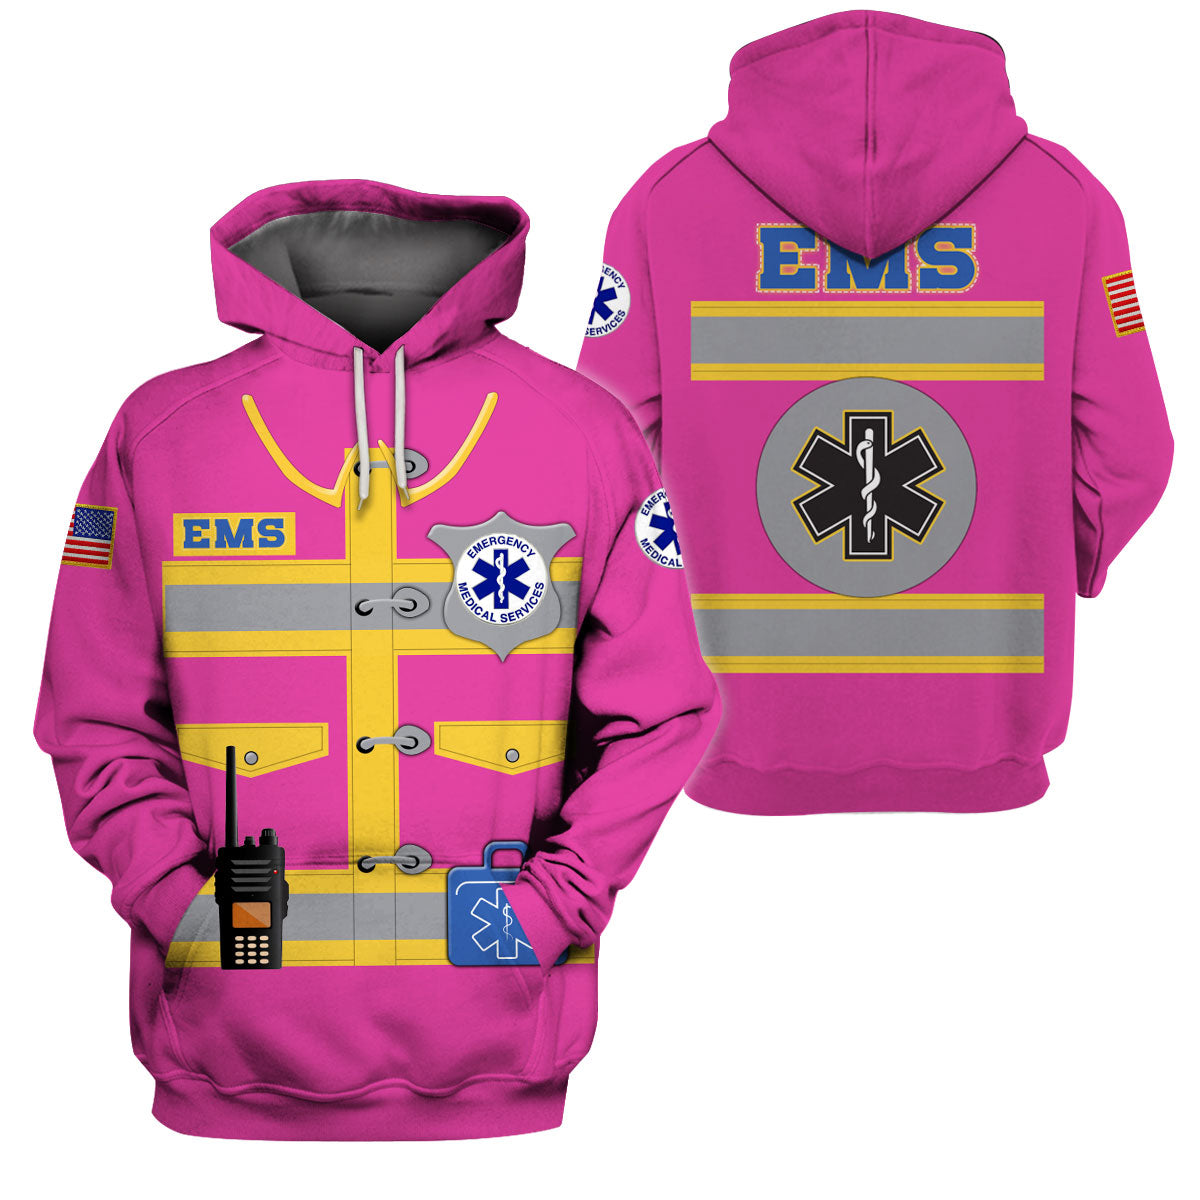 EMS 3D ALL OVER PRINTED SHIRTS FOR MEN AND WOMEN - GnWarriors Clothing